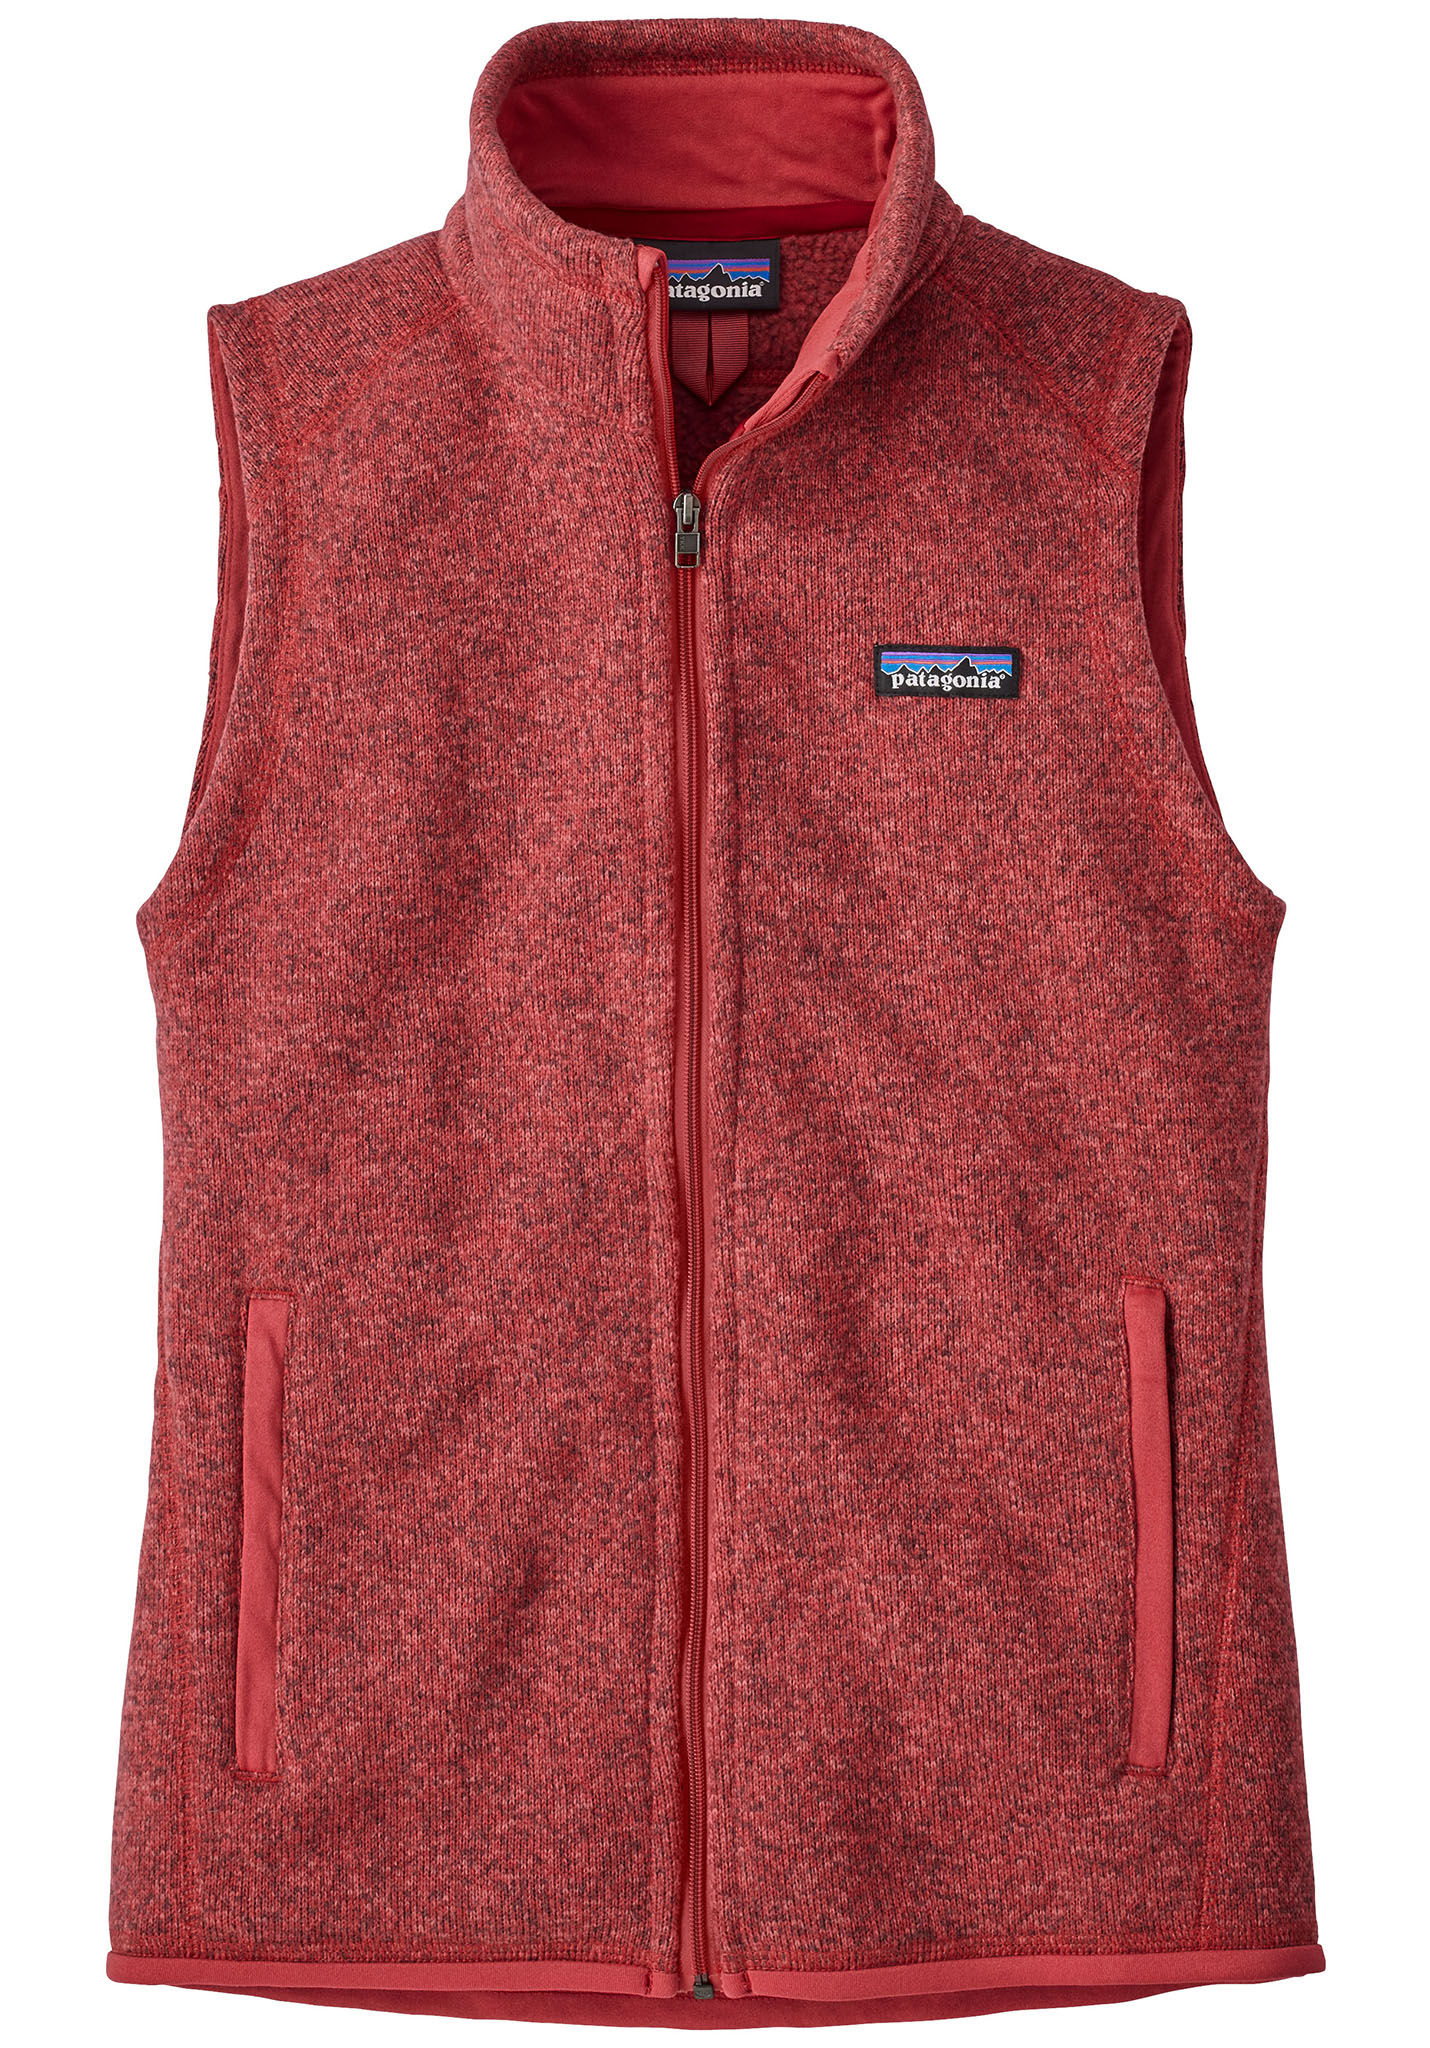 de94a8a6822 PATAGONIA Better - Outdoor Jacket for Women - Red - Planet Sports